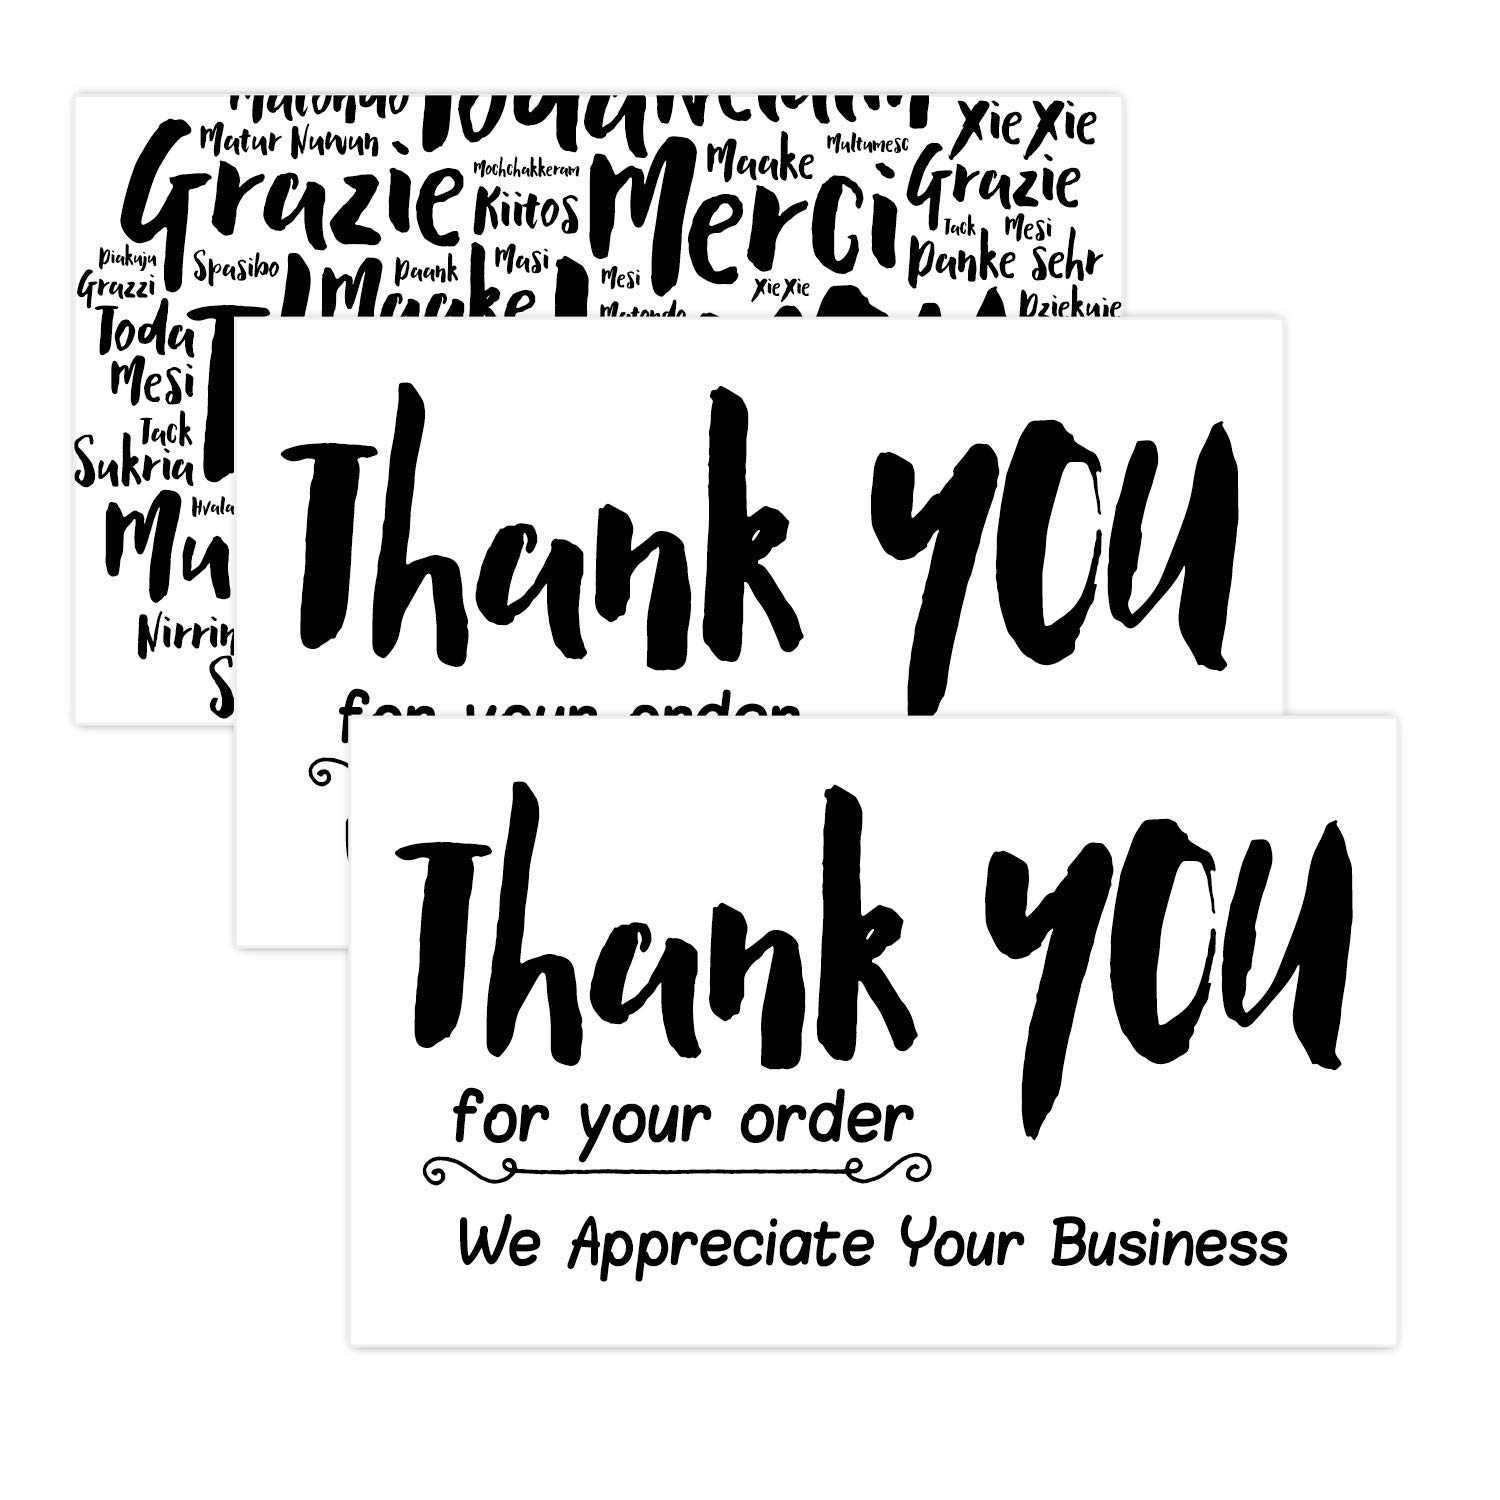 50 Thank You for Your Order Cards - Customer Thank You Cards-Thank You Package Insert.